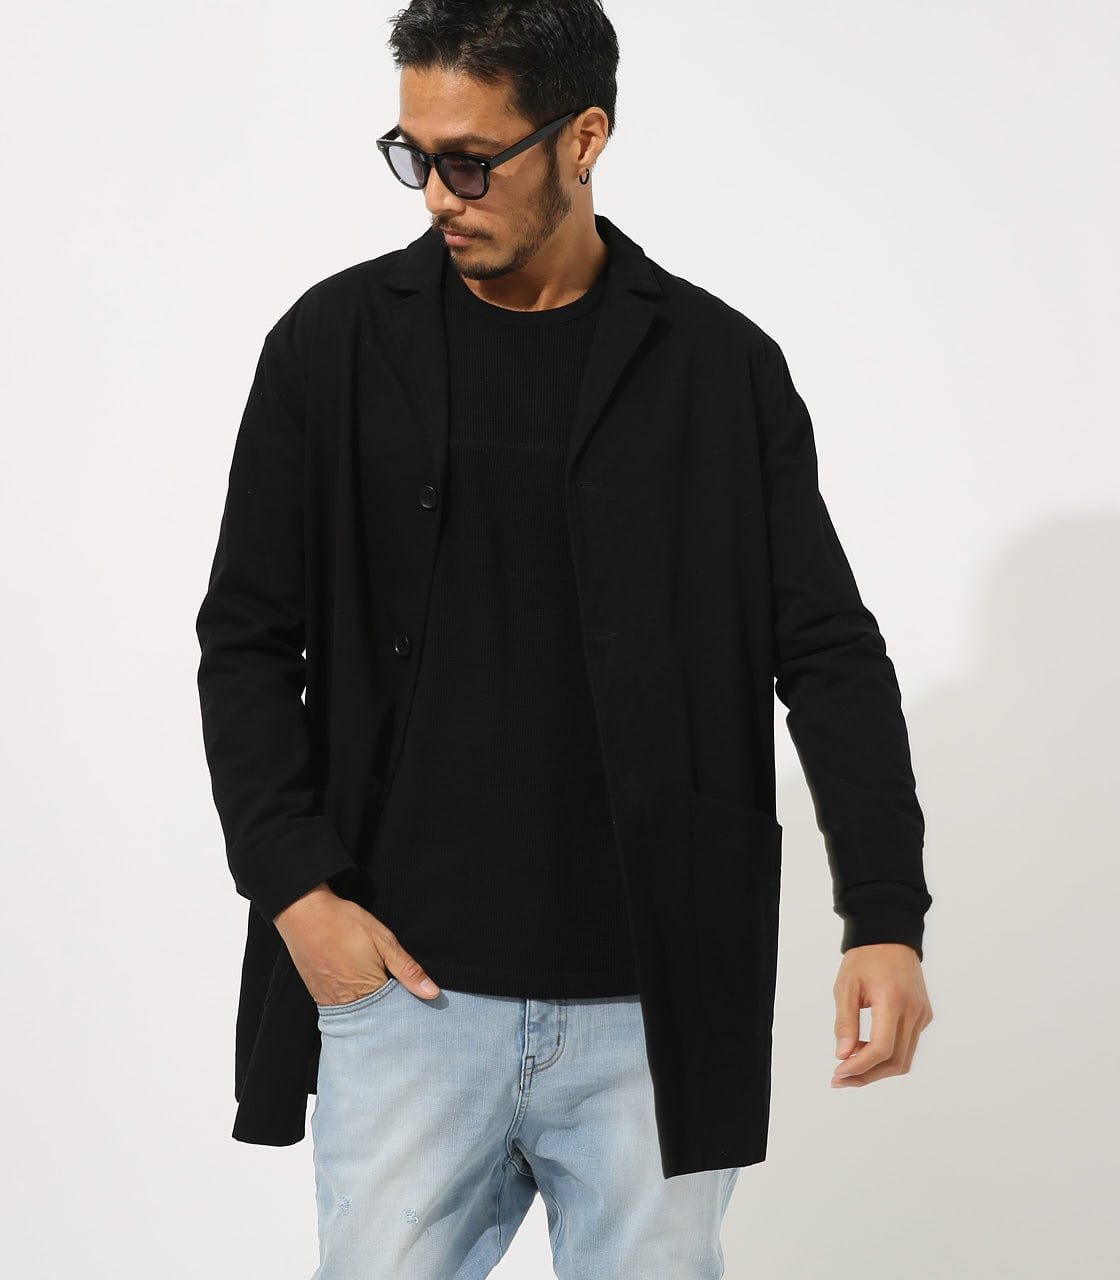 【AZUL BY MOUSSY】STANDARD SHOPCOAT 詳細画像 BLK 1